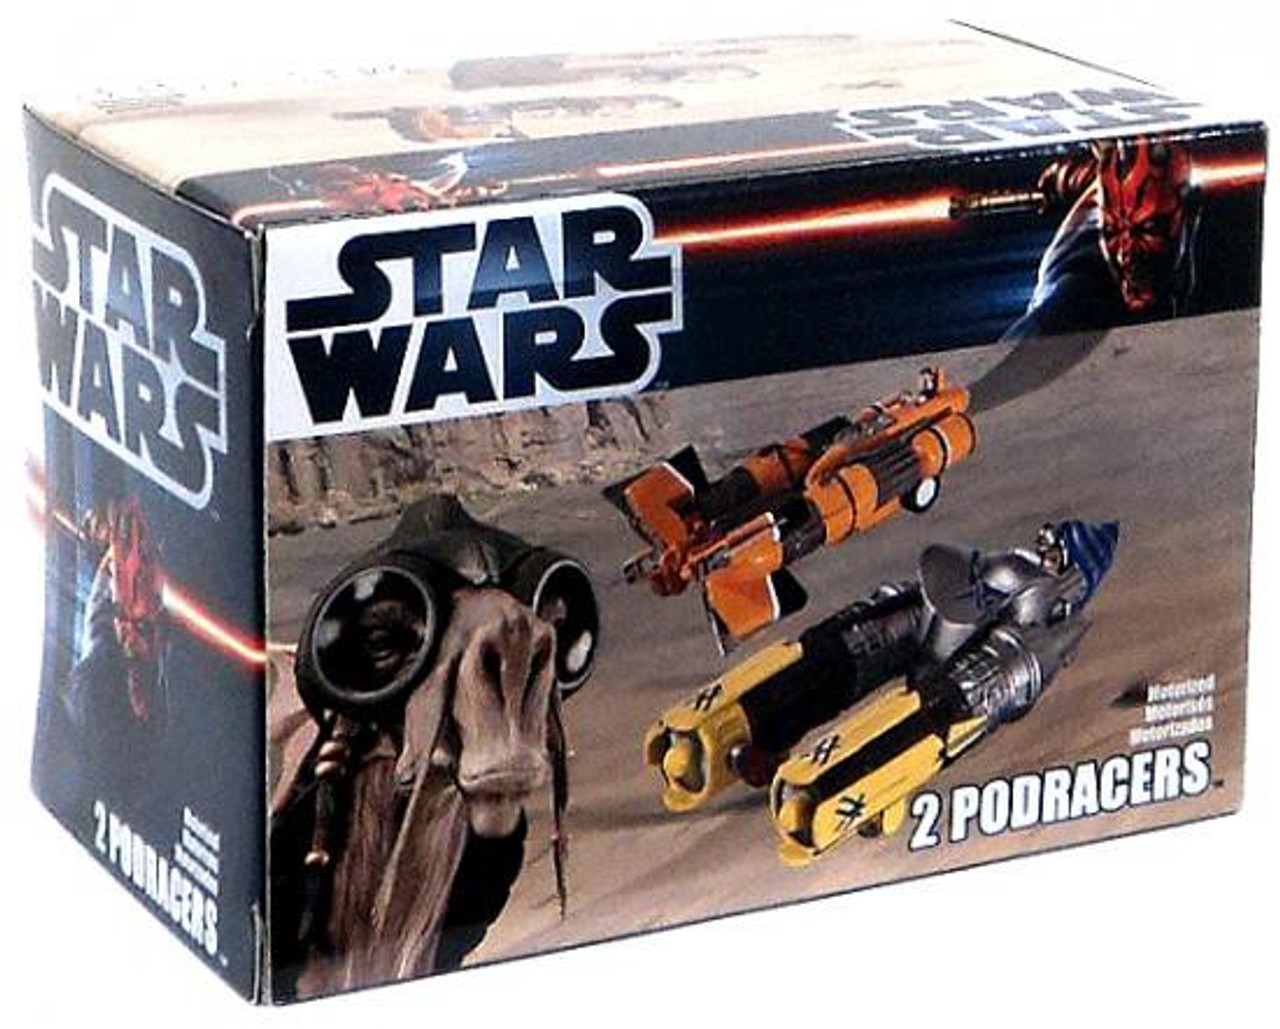 Star Wars Pullback Podracer Set